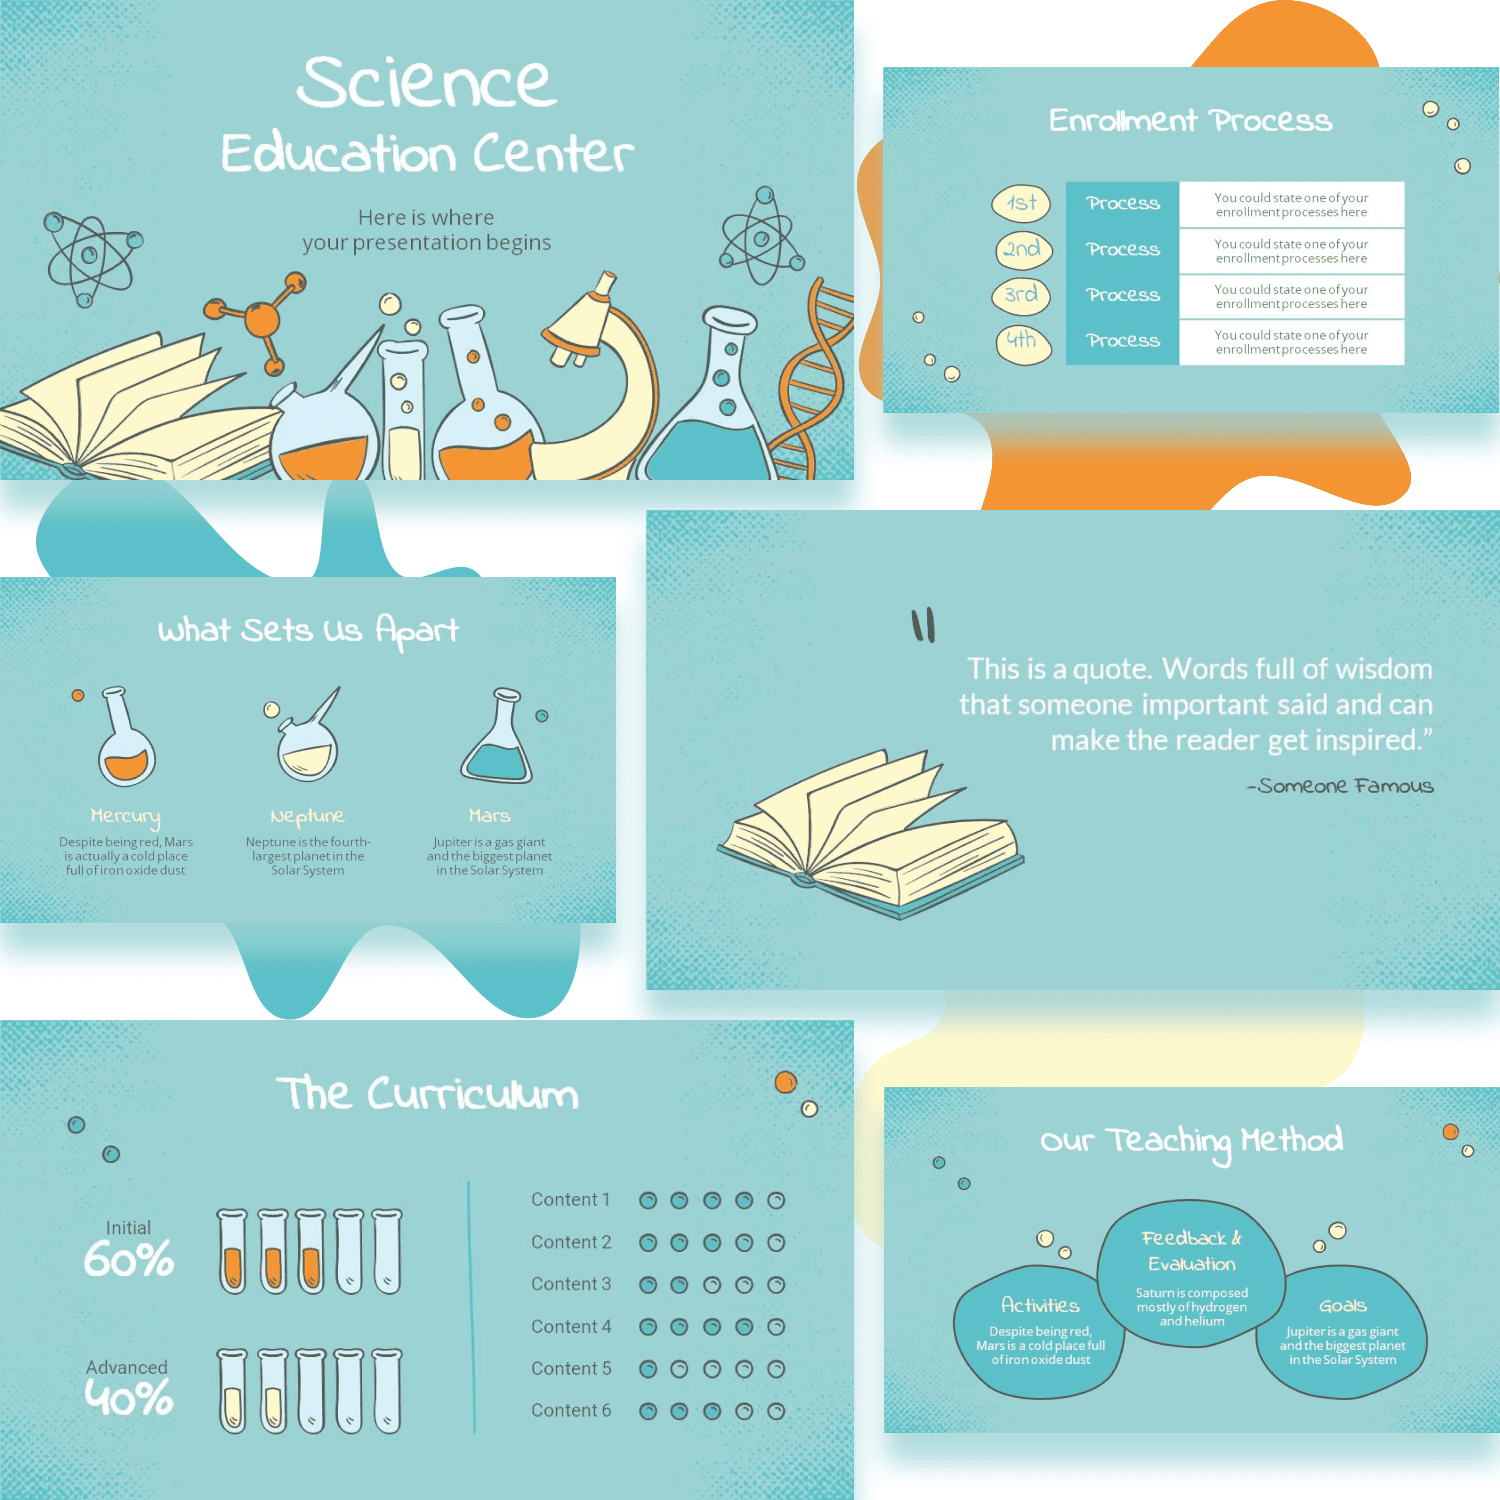 Free Science Education Center PowerPoint Template cover image.